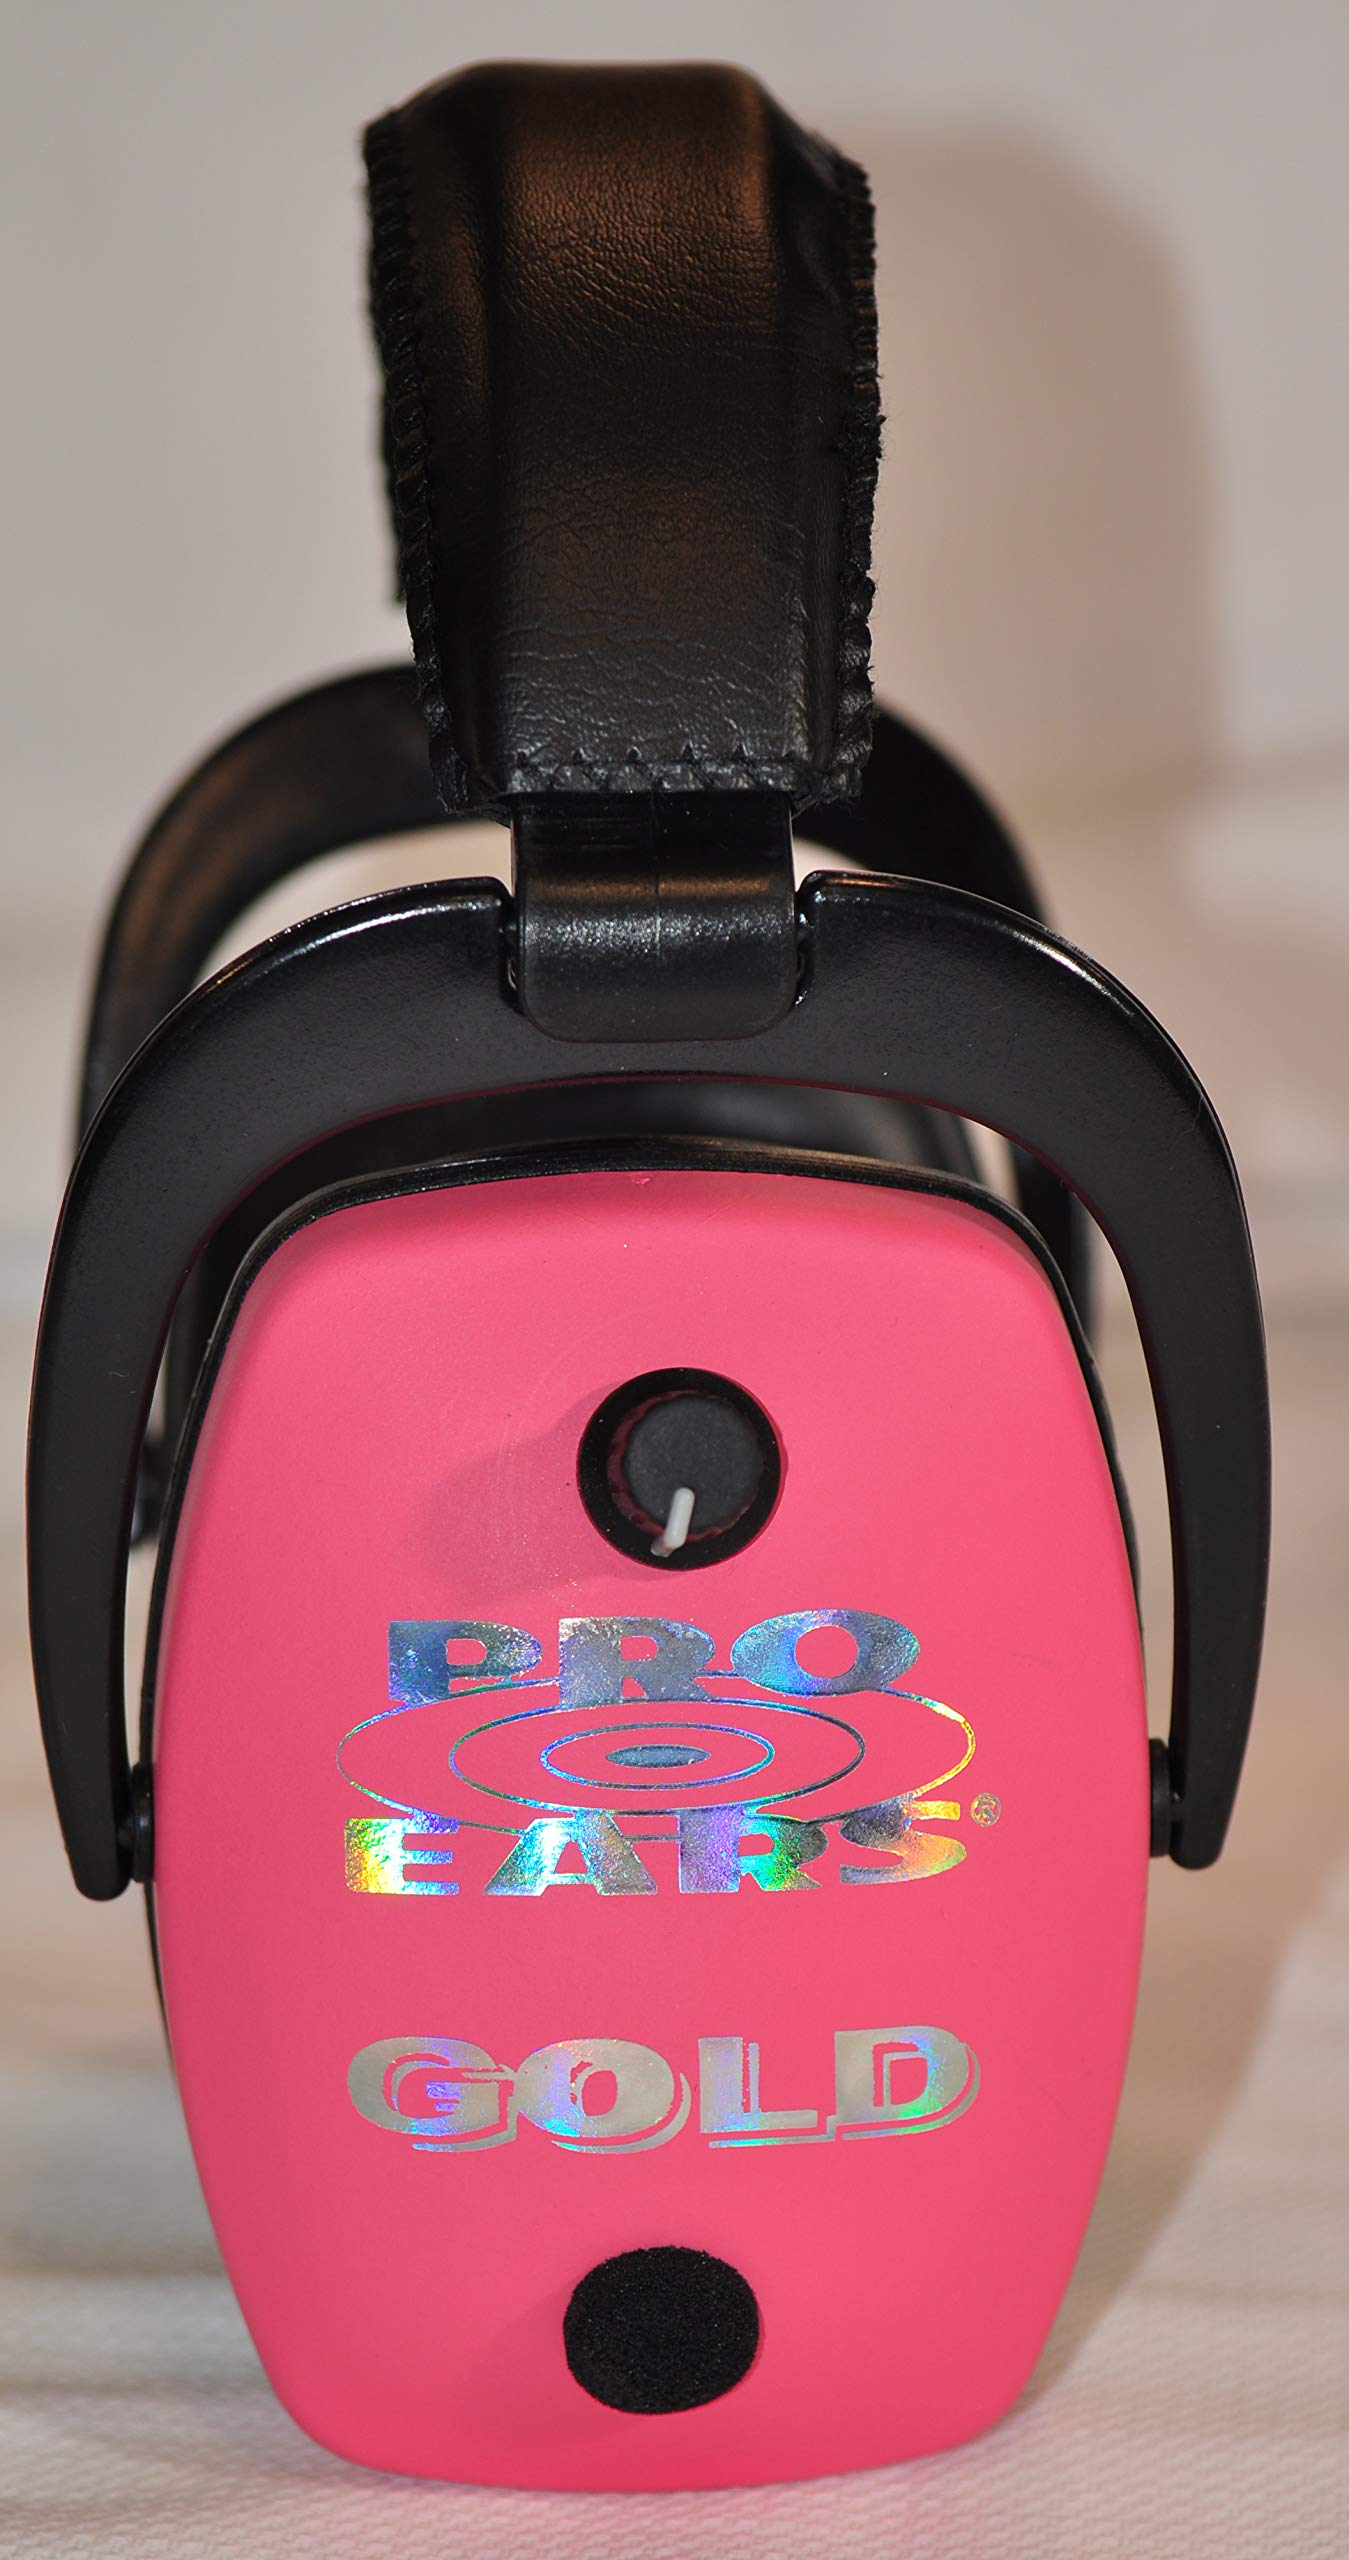 Pro Ears Pro Mag Gold Hearing Protection and Amplification Ear Muffs, Pink by Pro Ears